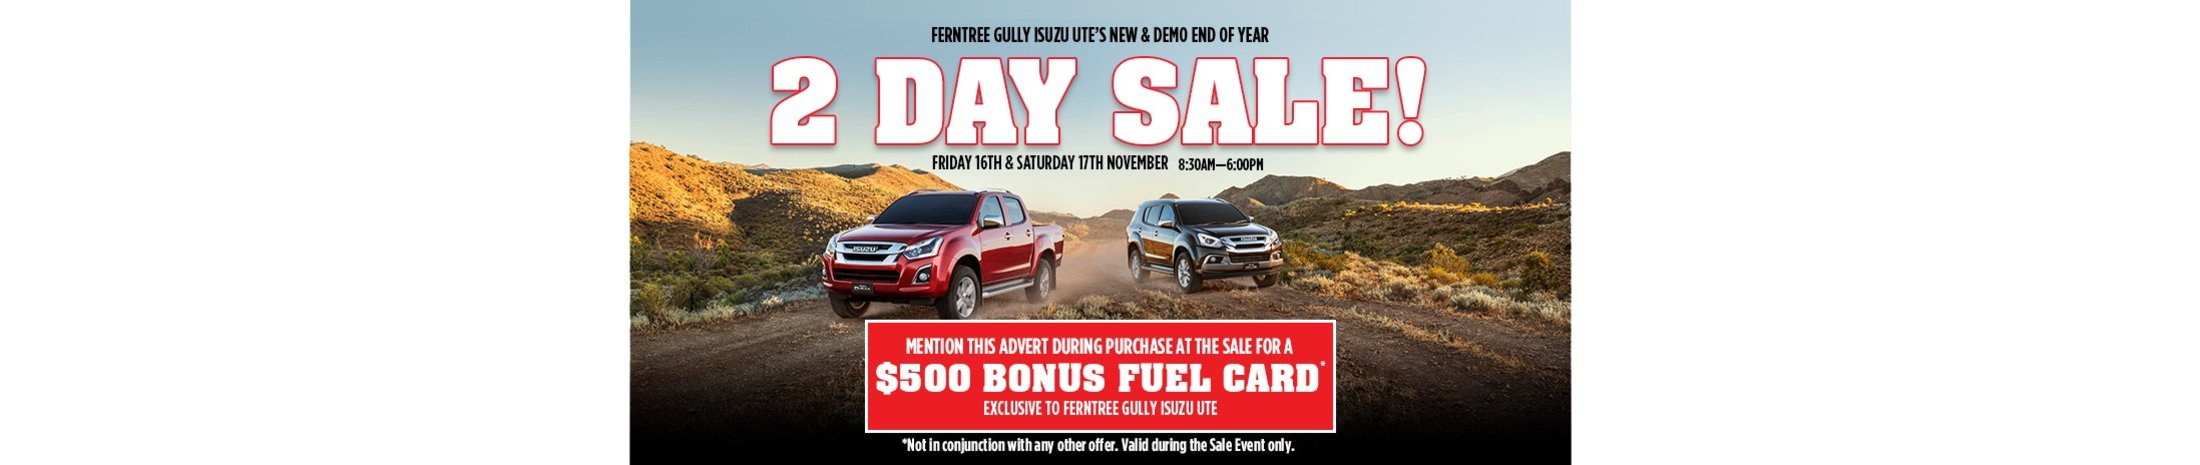 Ferntree Gully Isuzu 2 Day Sale